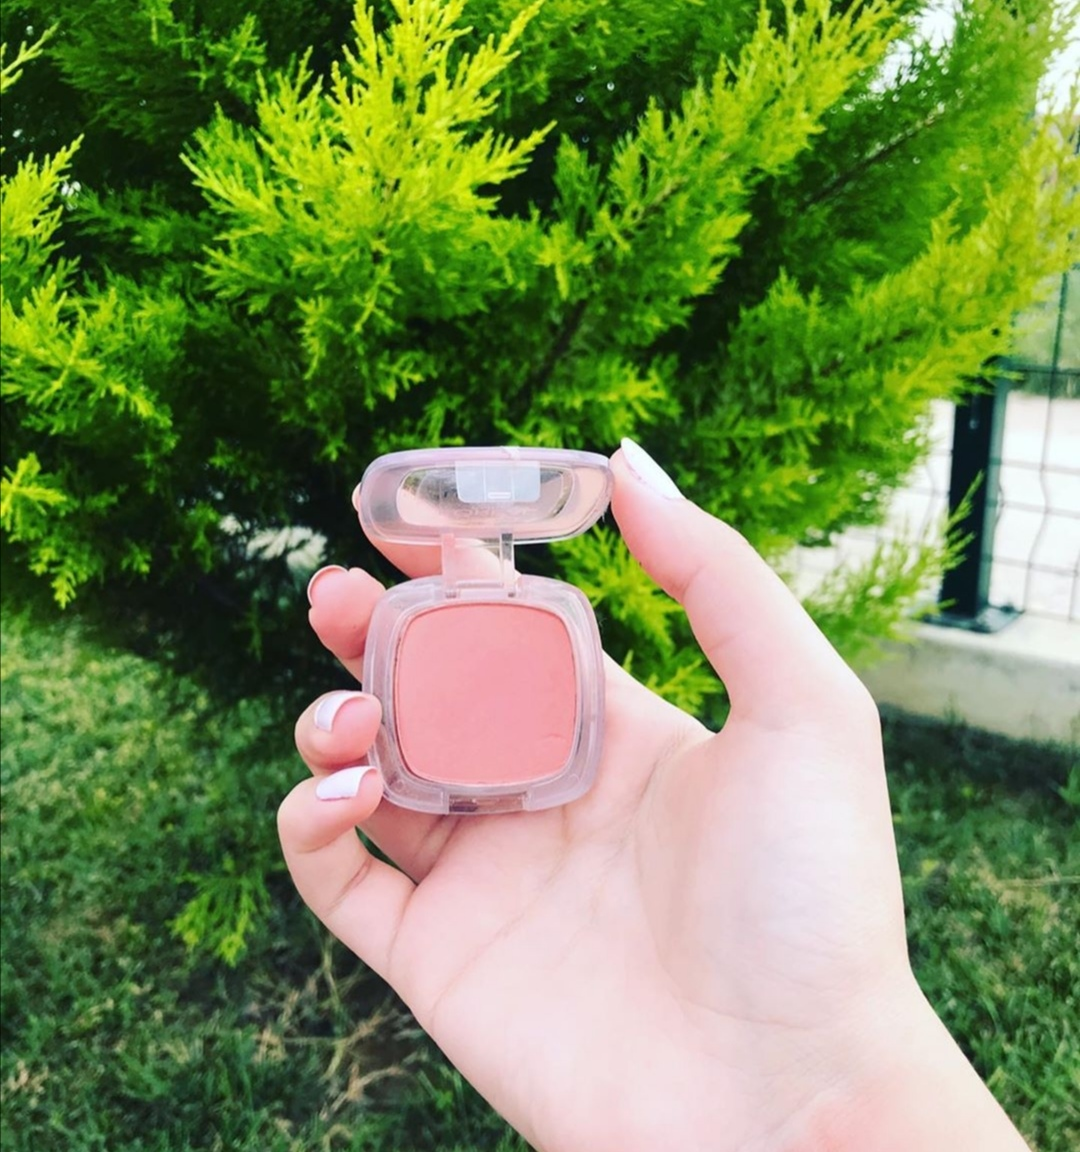 L'Oréal True Match Le Blush (Peach 160)